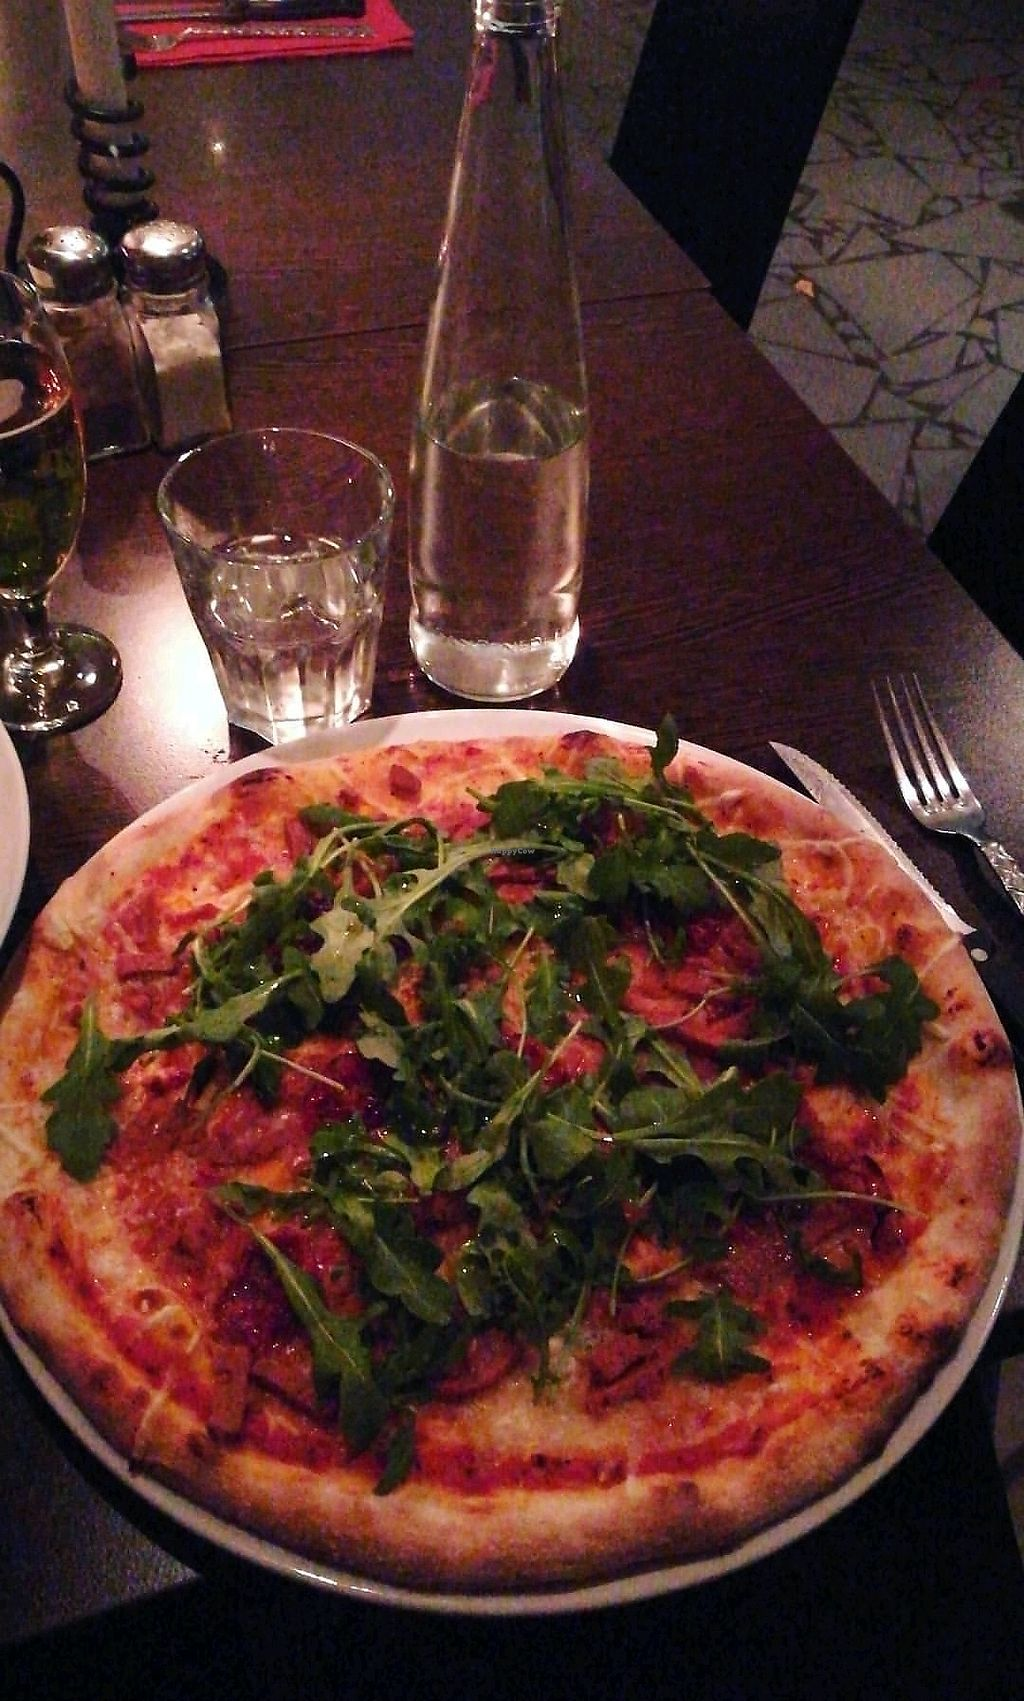 """Photo of Feca  by <a href=""""/members/profile/ErikWahlstr%C3%B6m"""">ErikWahlström</a> <br/>Vegan pizza - Totti at Feca restaurant Stockholm  <br/> September 2, 2017  - <a href='/contact/abuse/image/69651/299931'>Report</a>"""